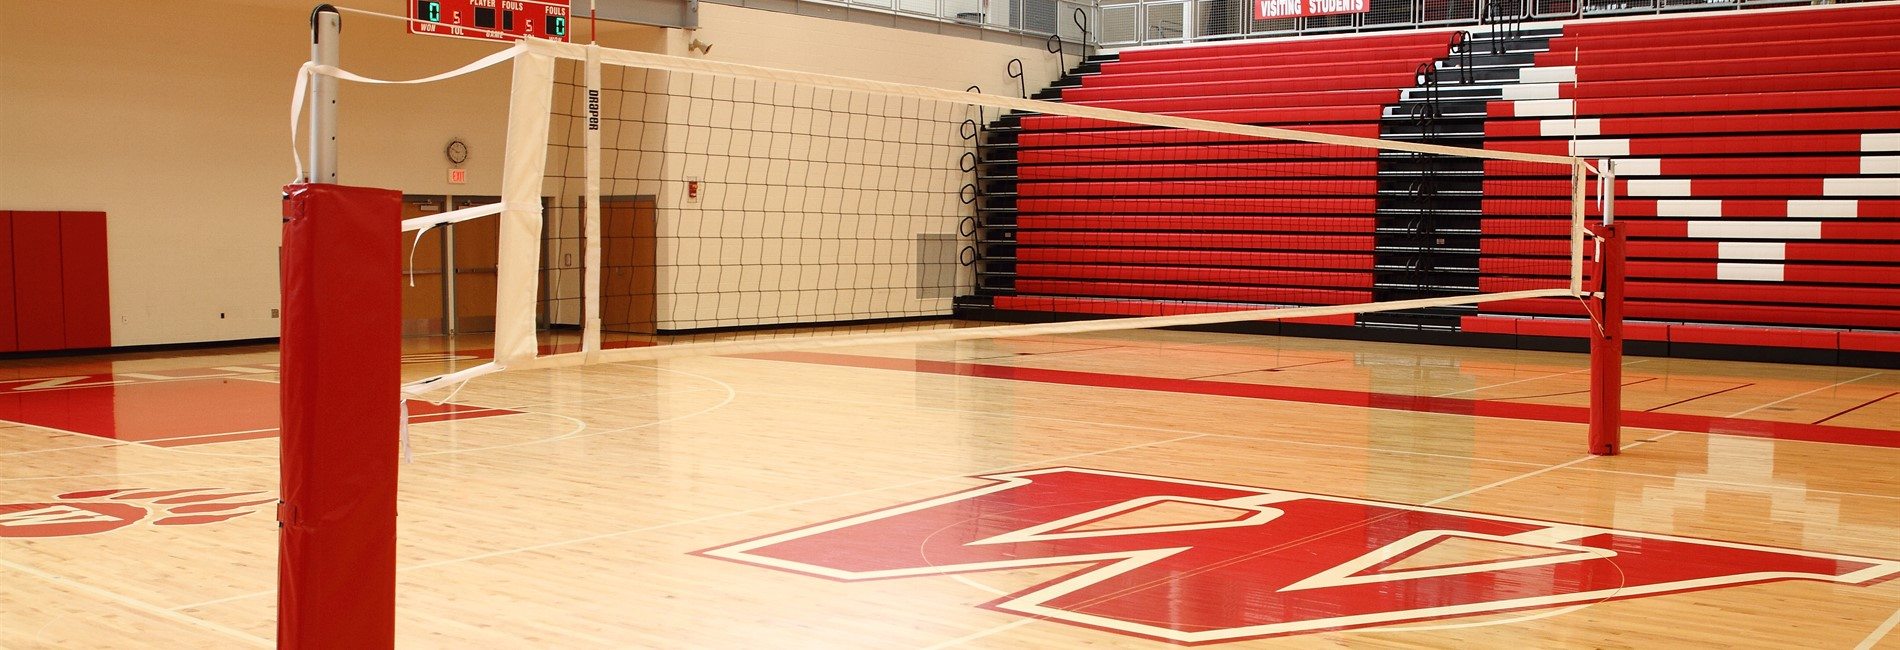 VB Gym floor